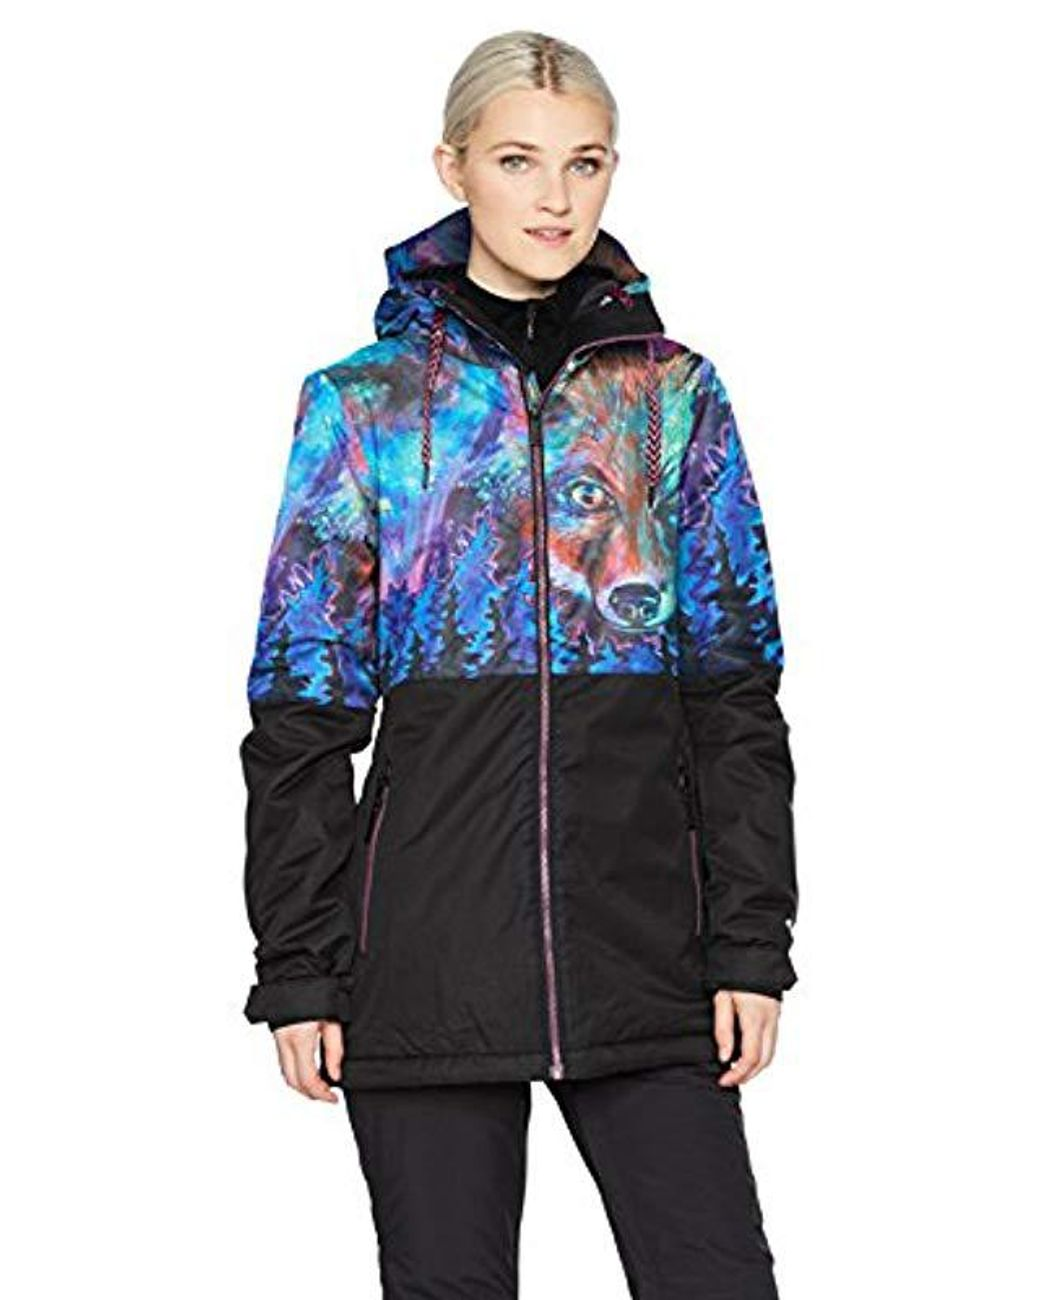 af4a600f Volcom Act Insulated 2 Layer Shell Snow Jacket in Black - Save 30% - Lyst